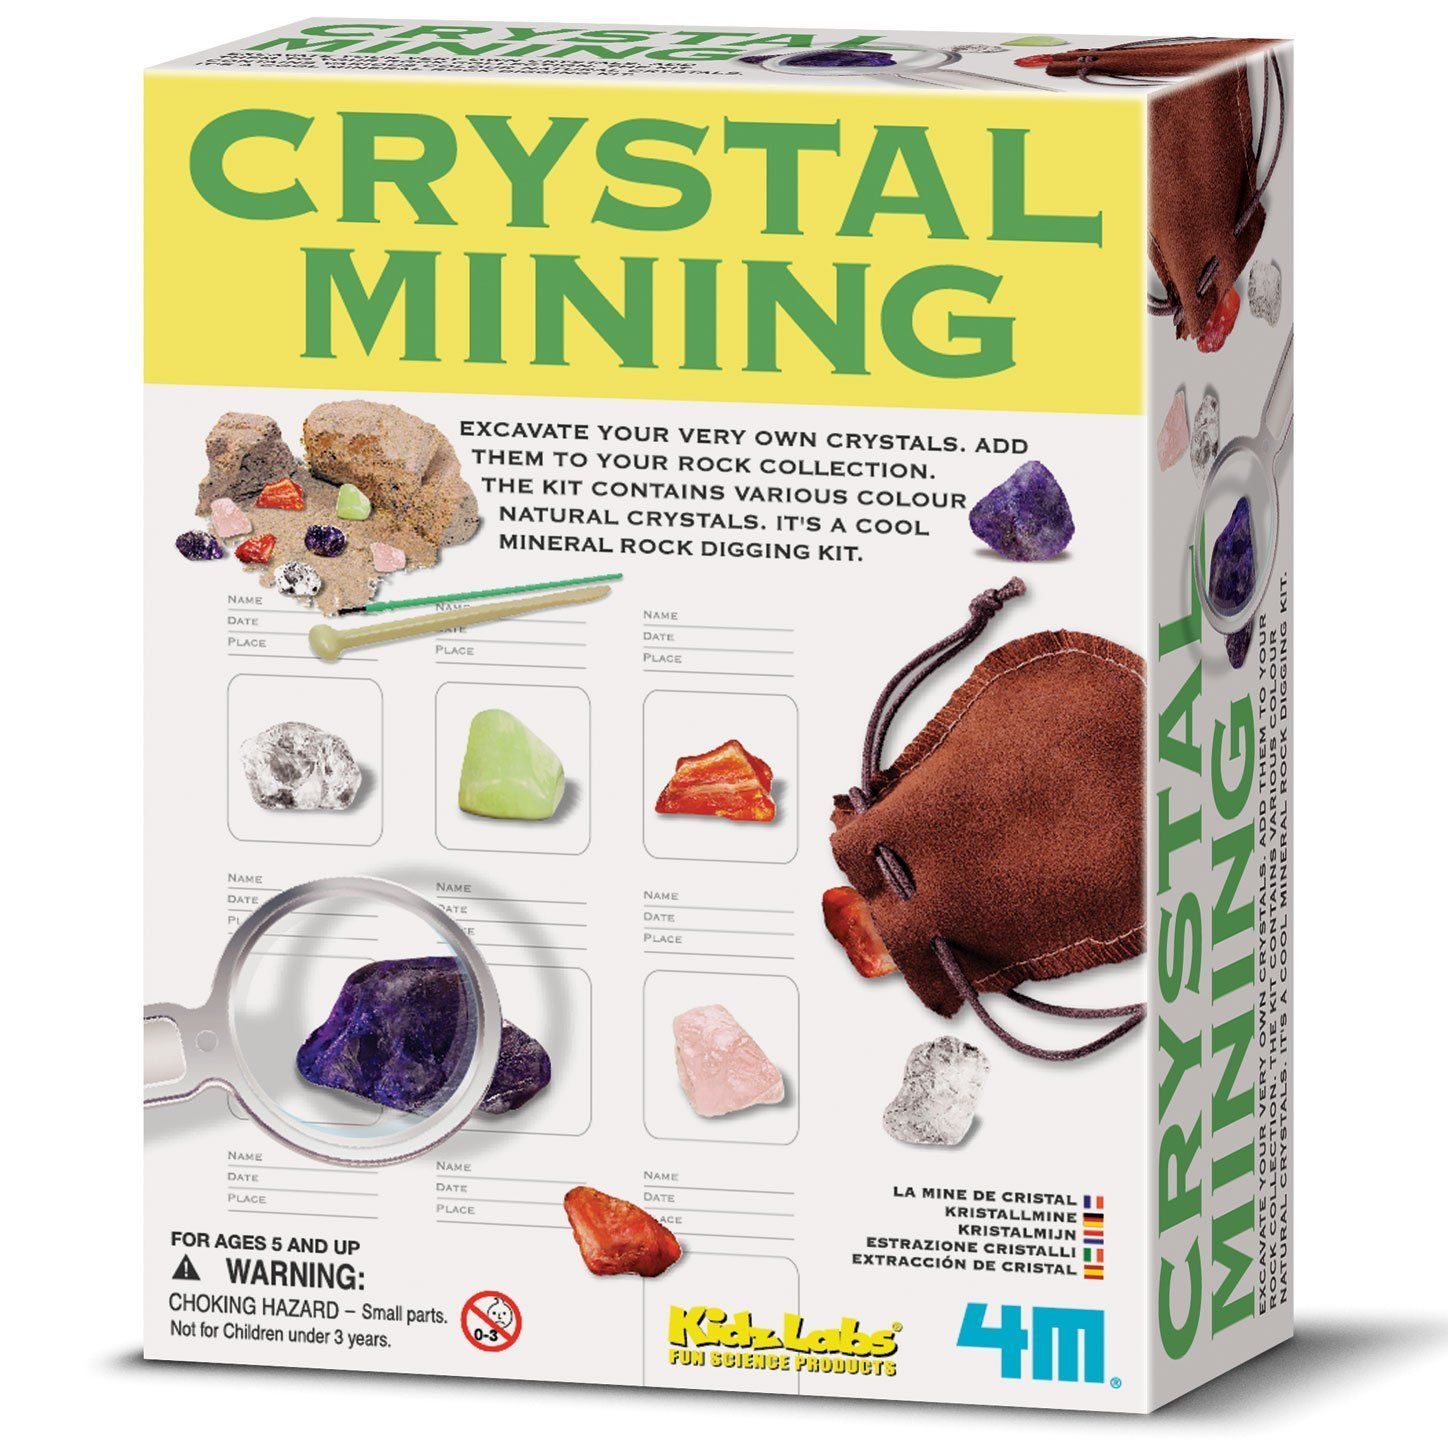 My Kids DIG the Crystal Digging Kit